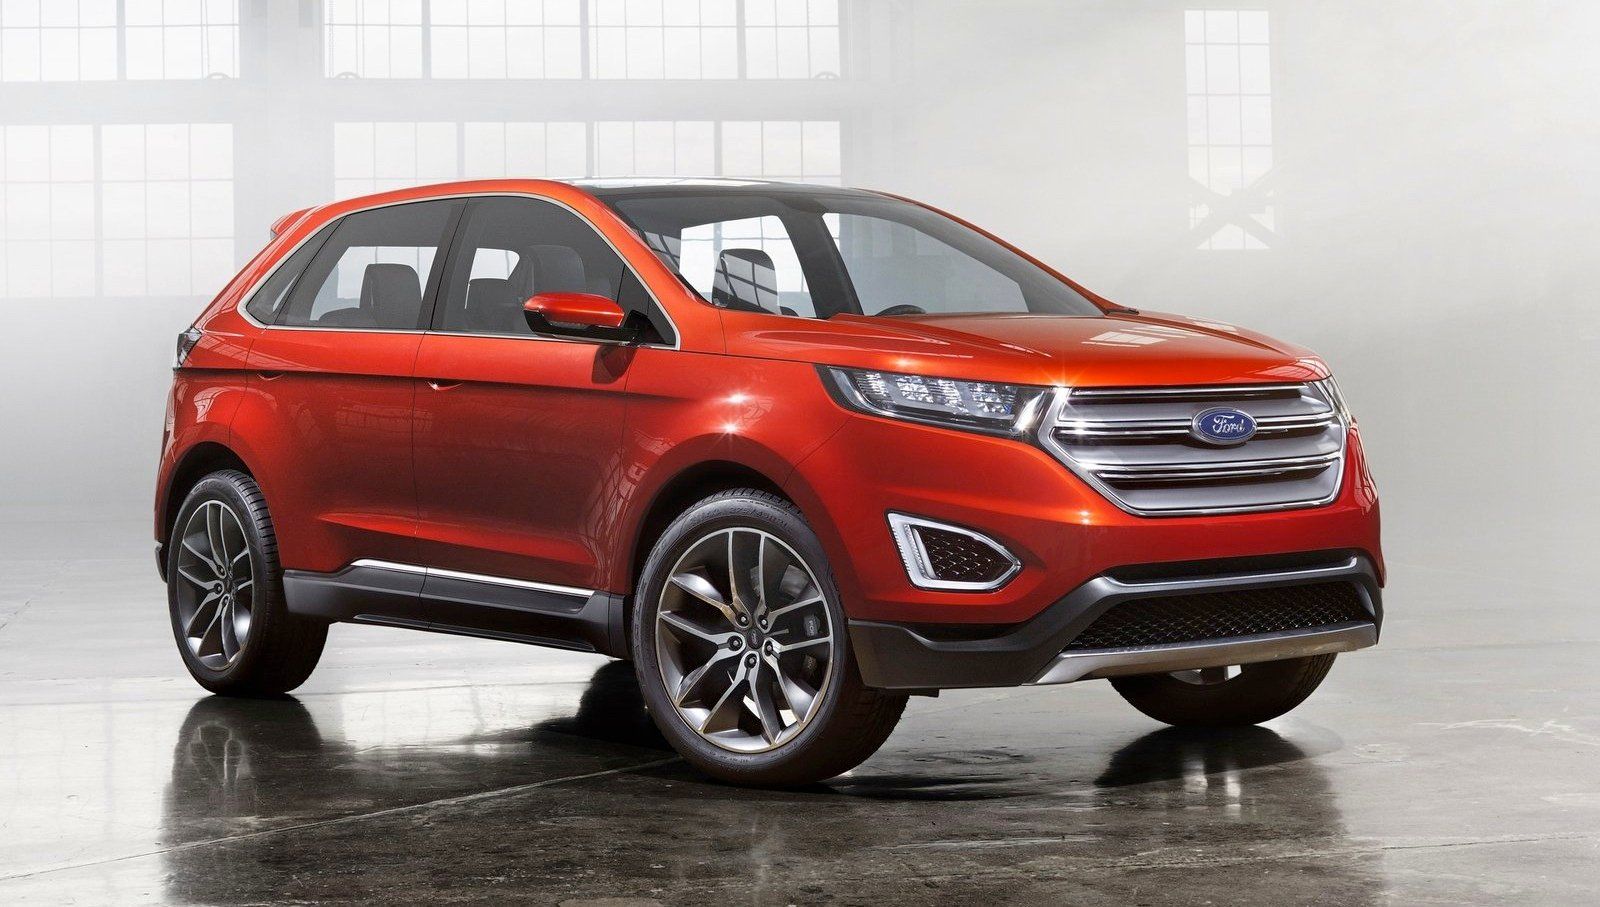 New Ford Edge >> Ford Australia 2017 : the post-Falcon and Territory showroom - photos | CarAdvice